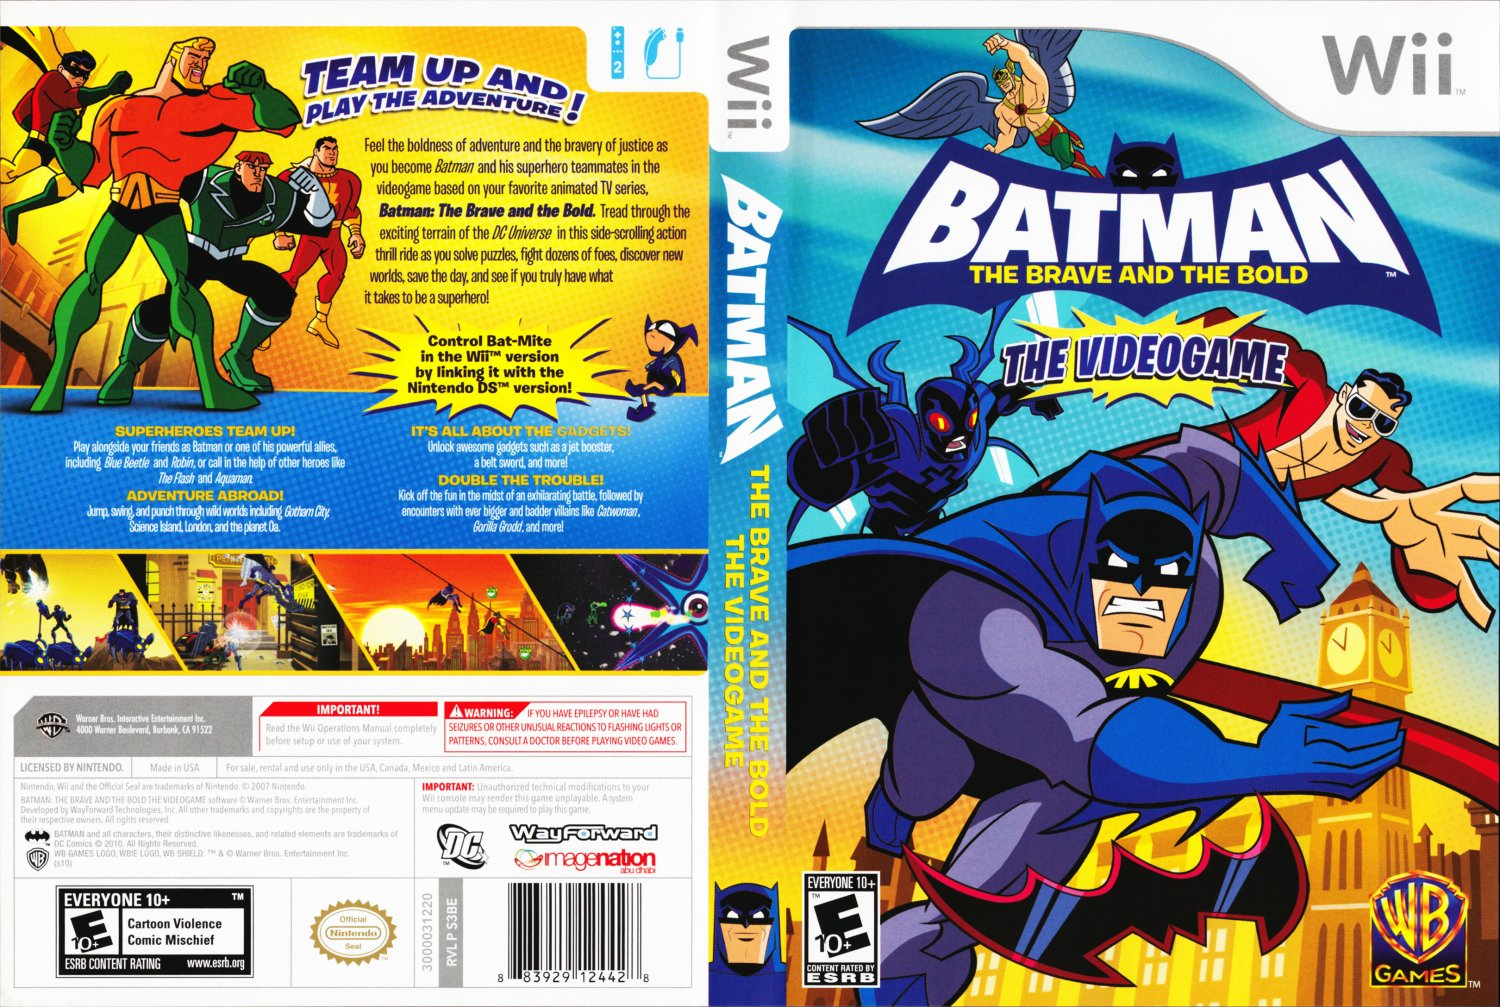 Batman the bold and the brave